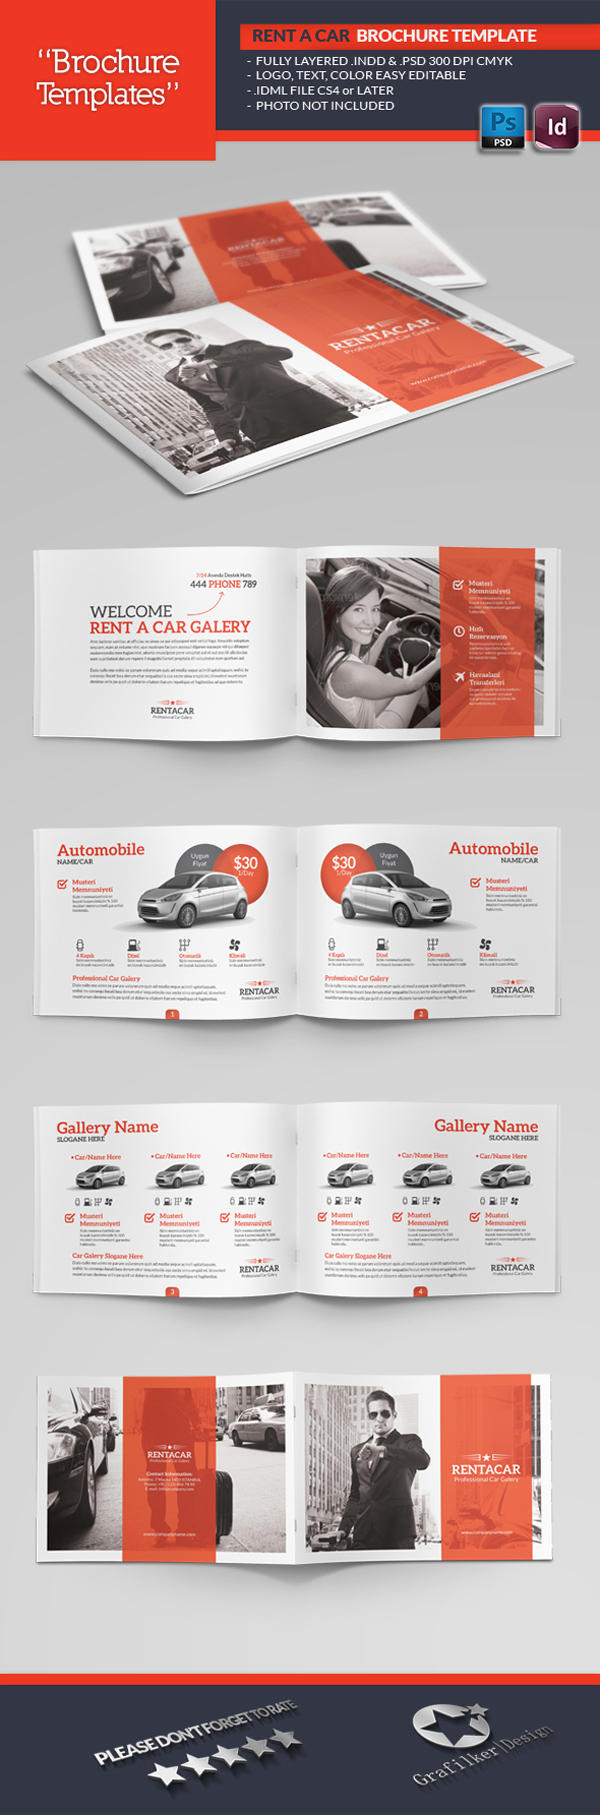 Professional Brochure Templates by grafilker - 37432